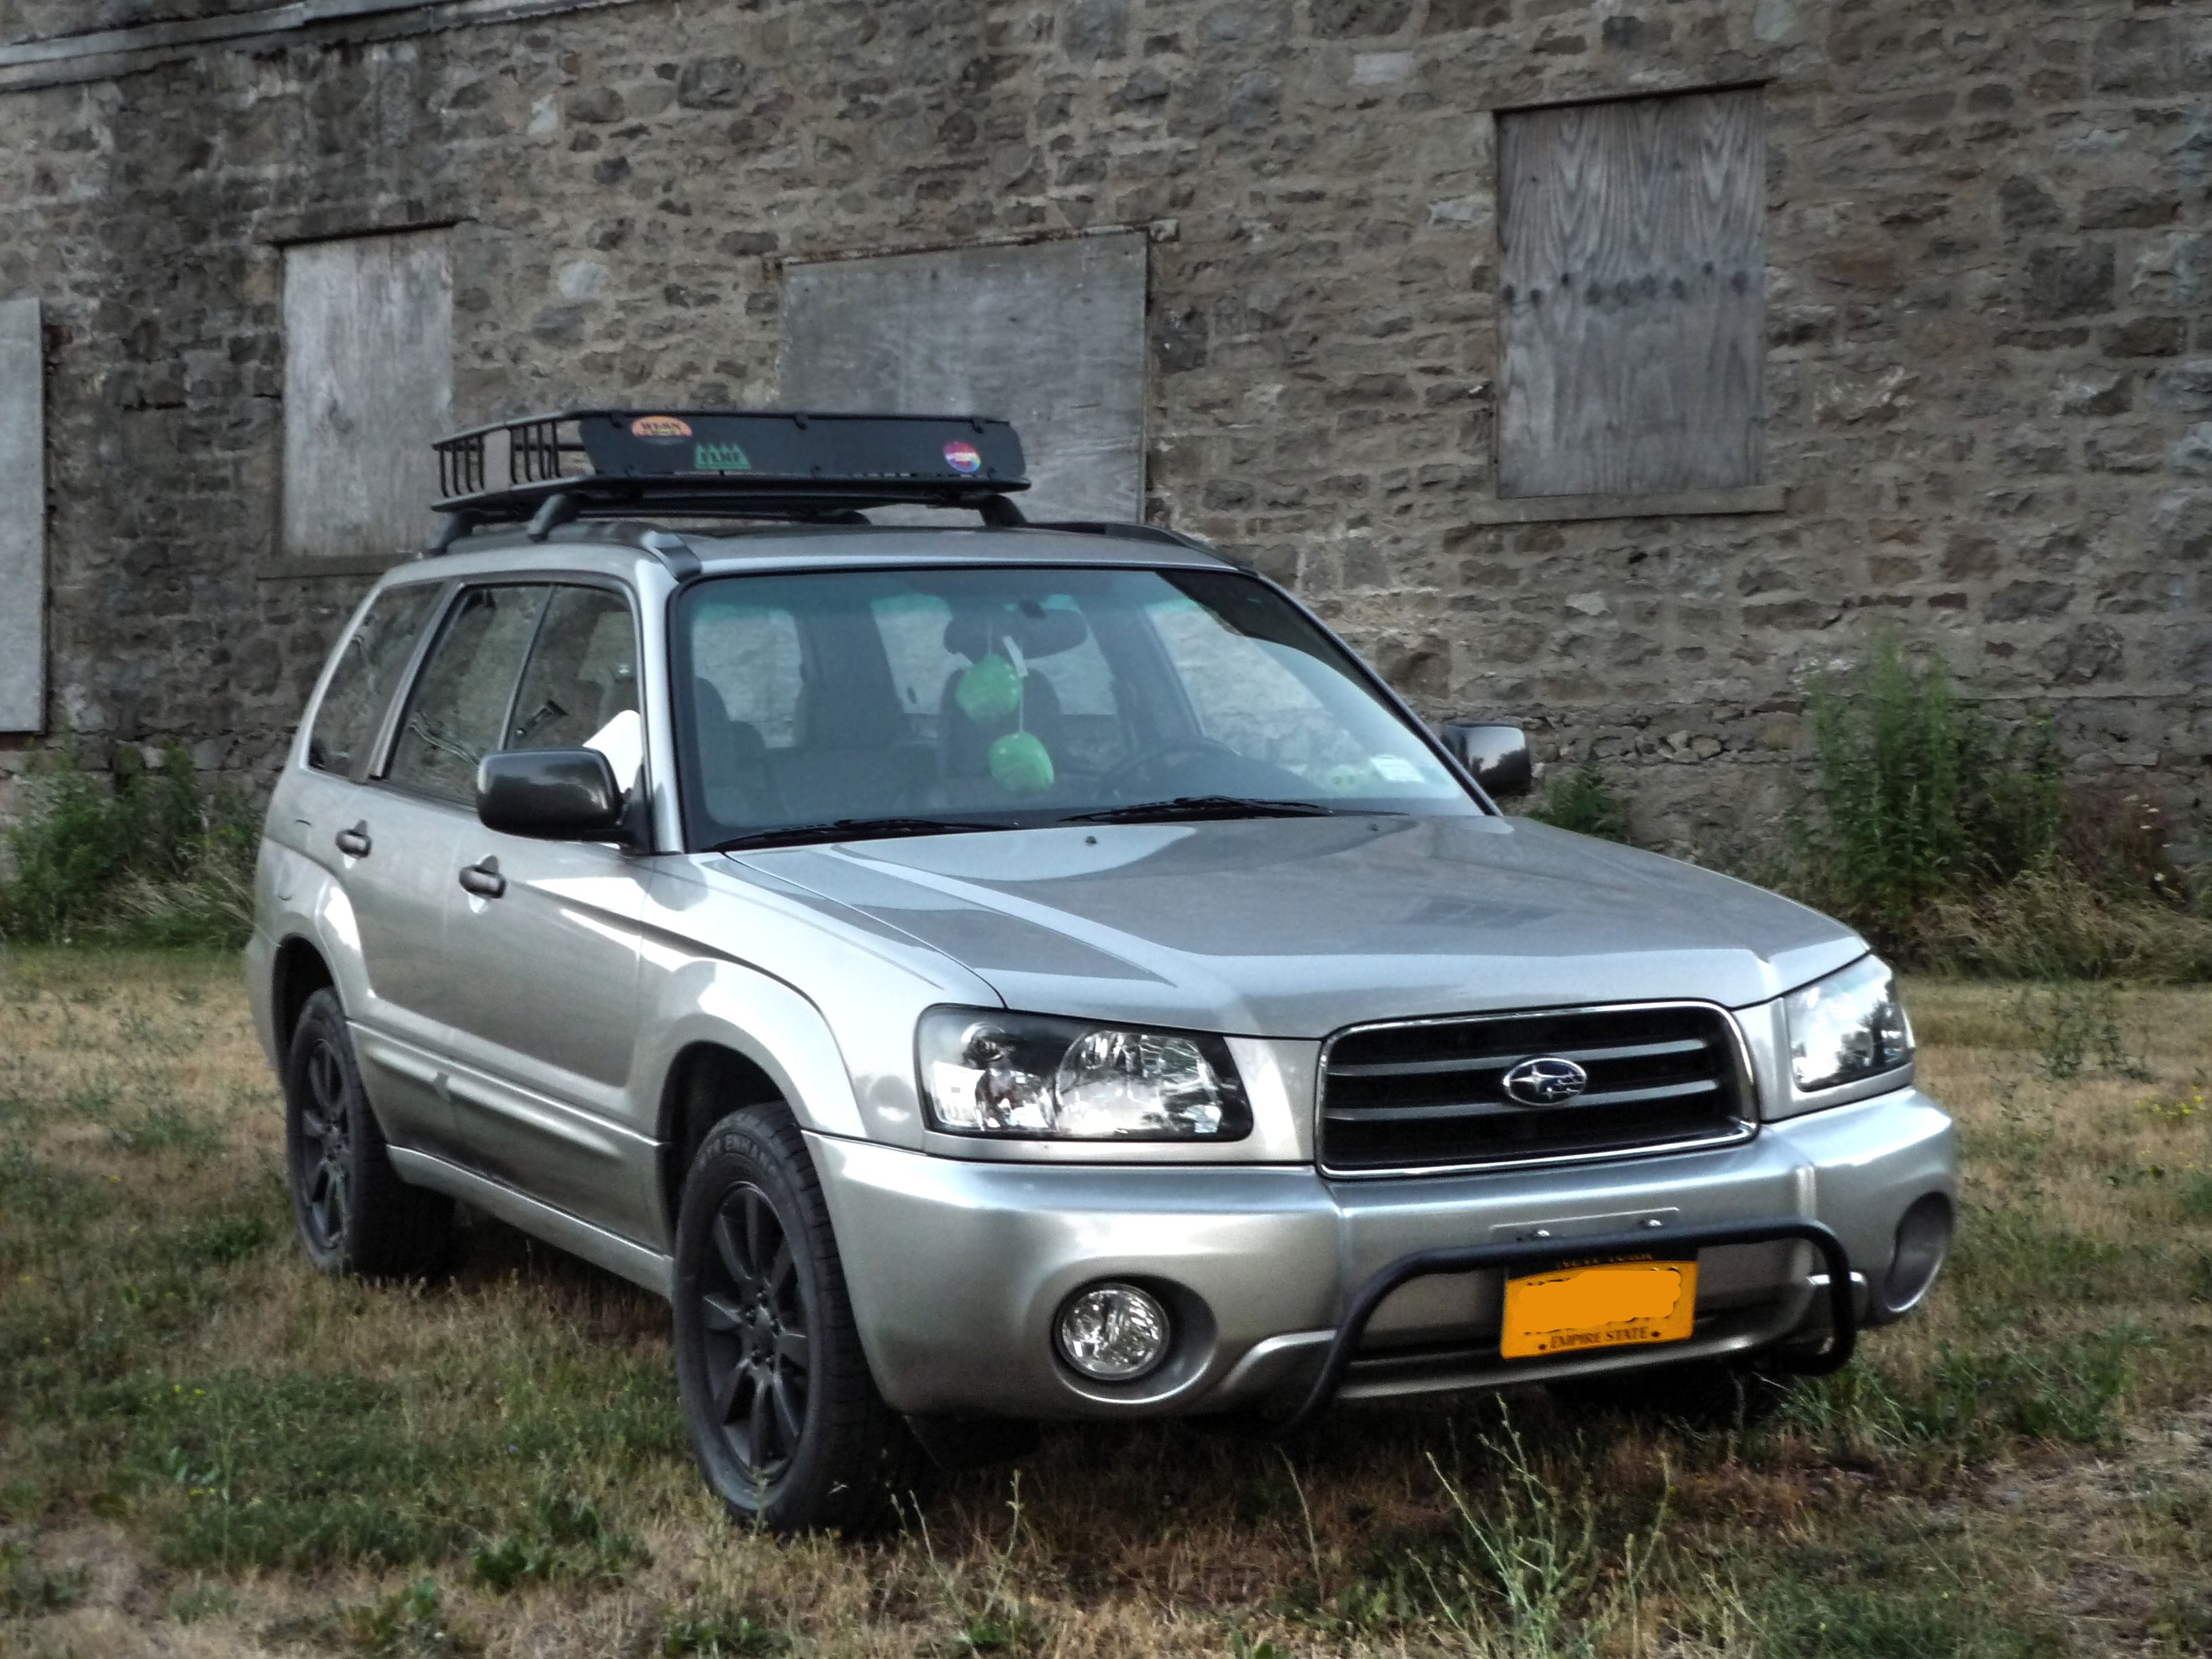 2005 crystal gray metallic subaru forester xs with rally 2005 crystal gray metallic subaru forester xs with rally innovations light bar cleared corners vanachro Gallery